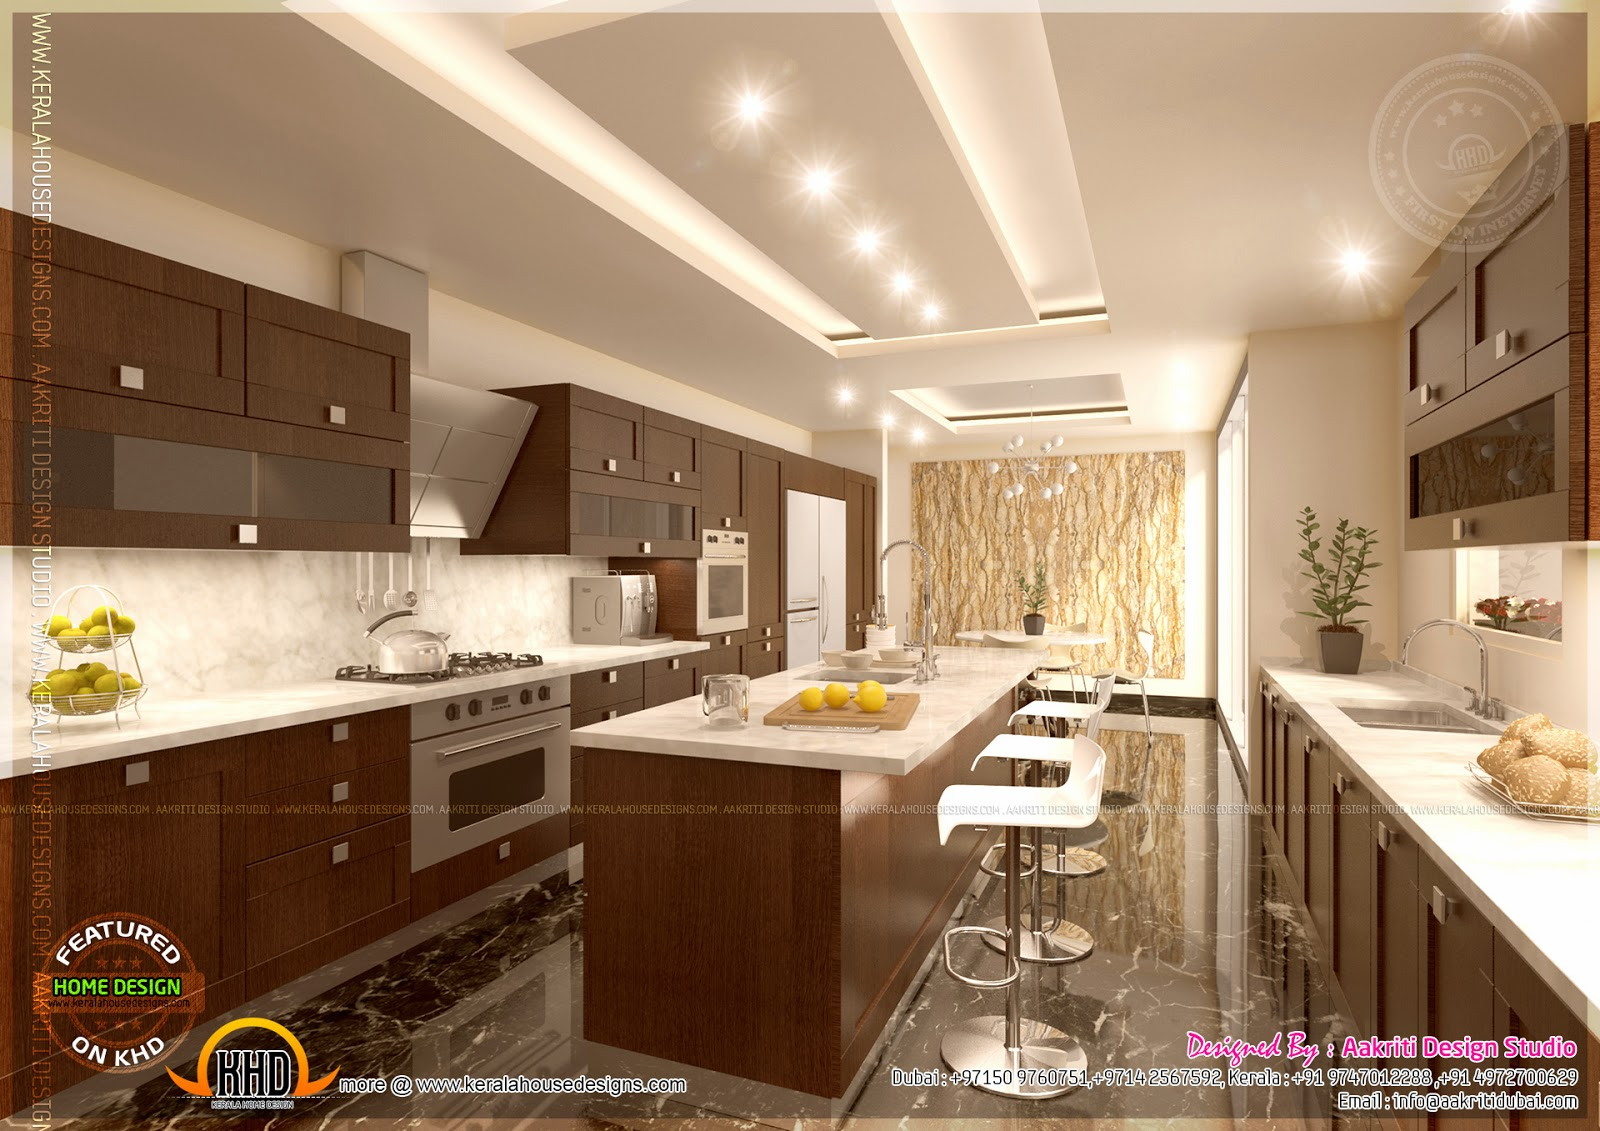 Kitchen designs by aakriti design studio kerala home for Home kitchen design pictures